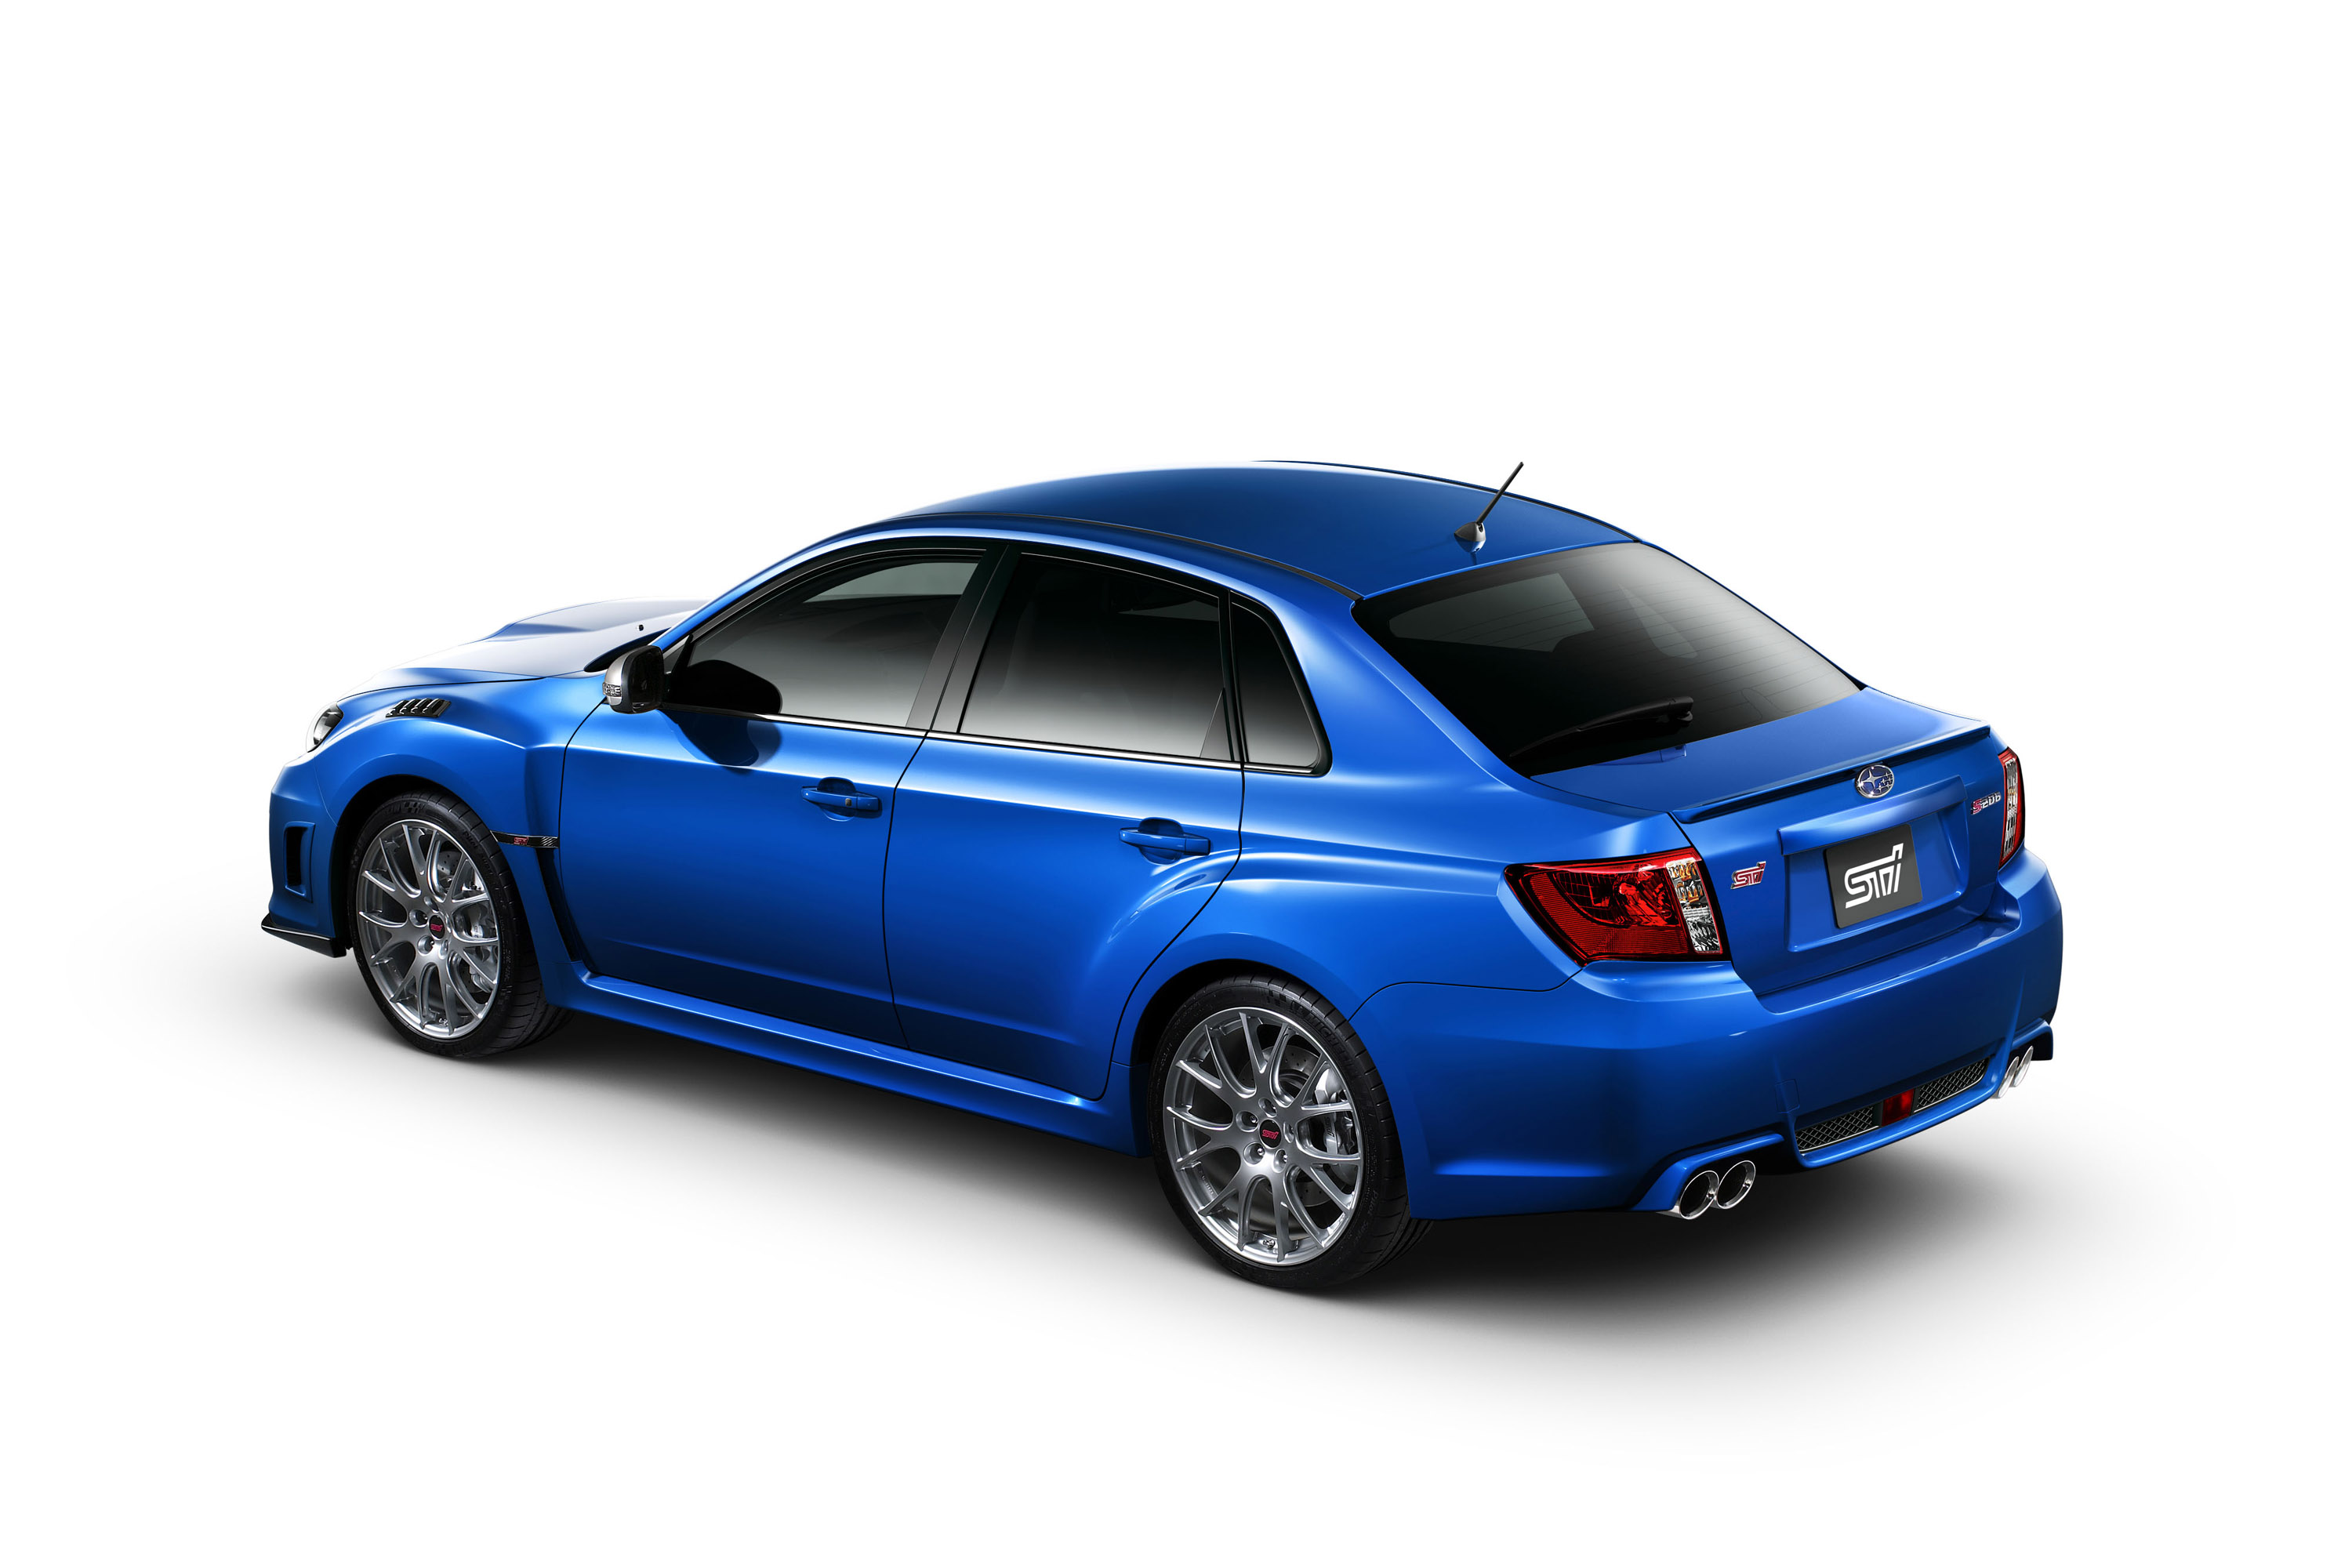 Take A Look About 2002 Subaru Impreza Wrx Specs